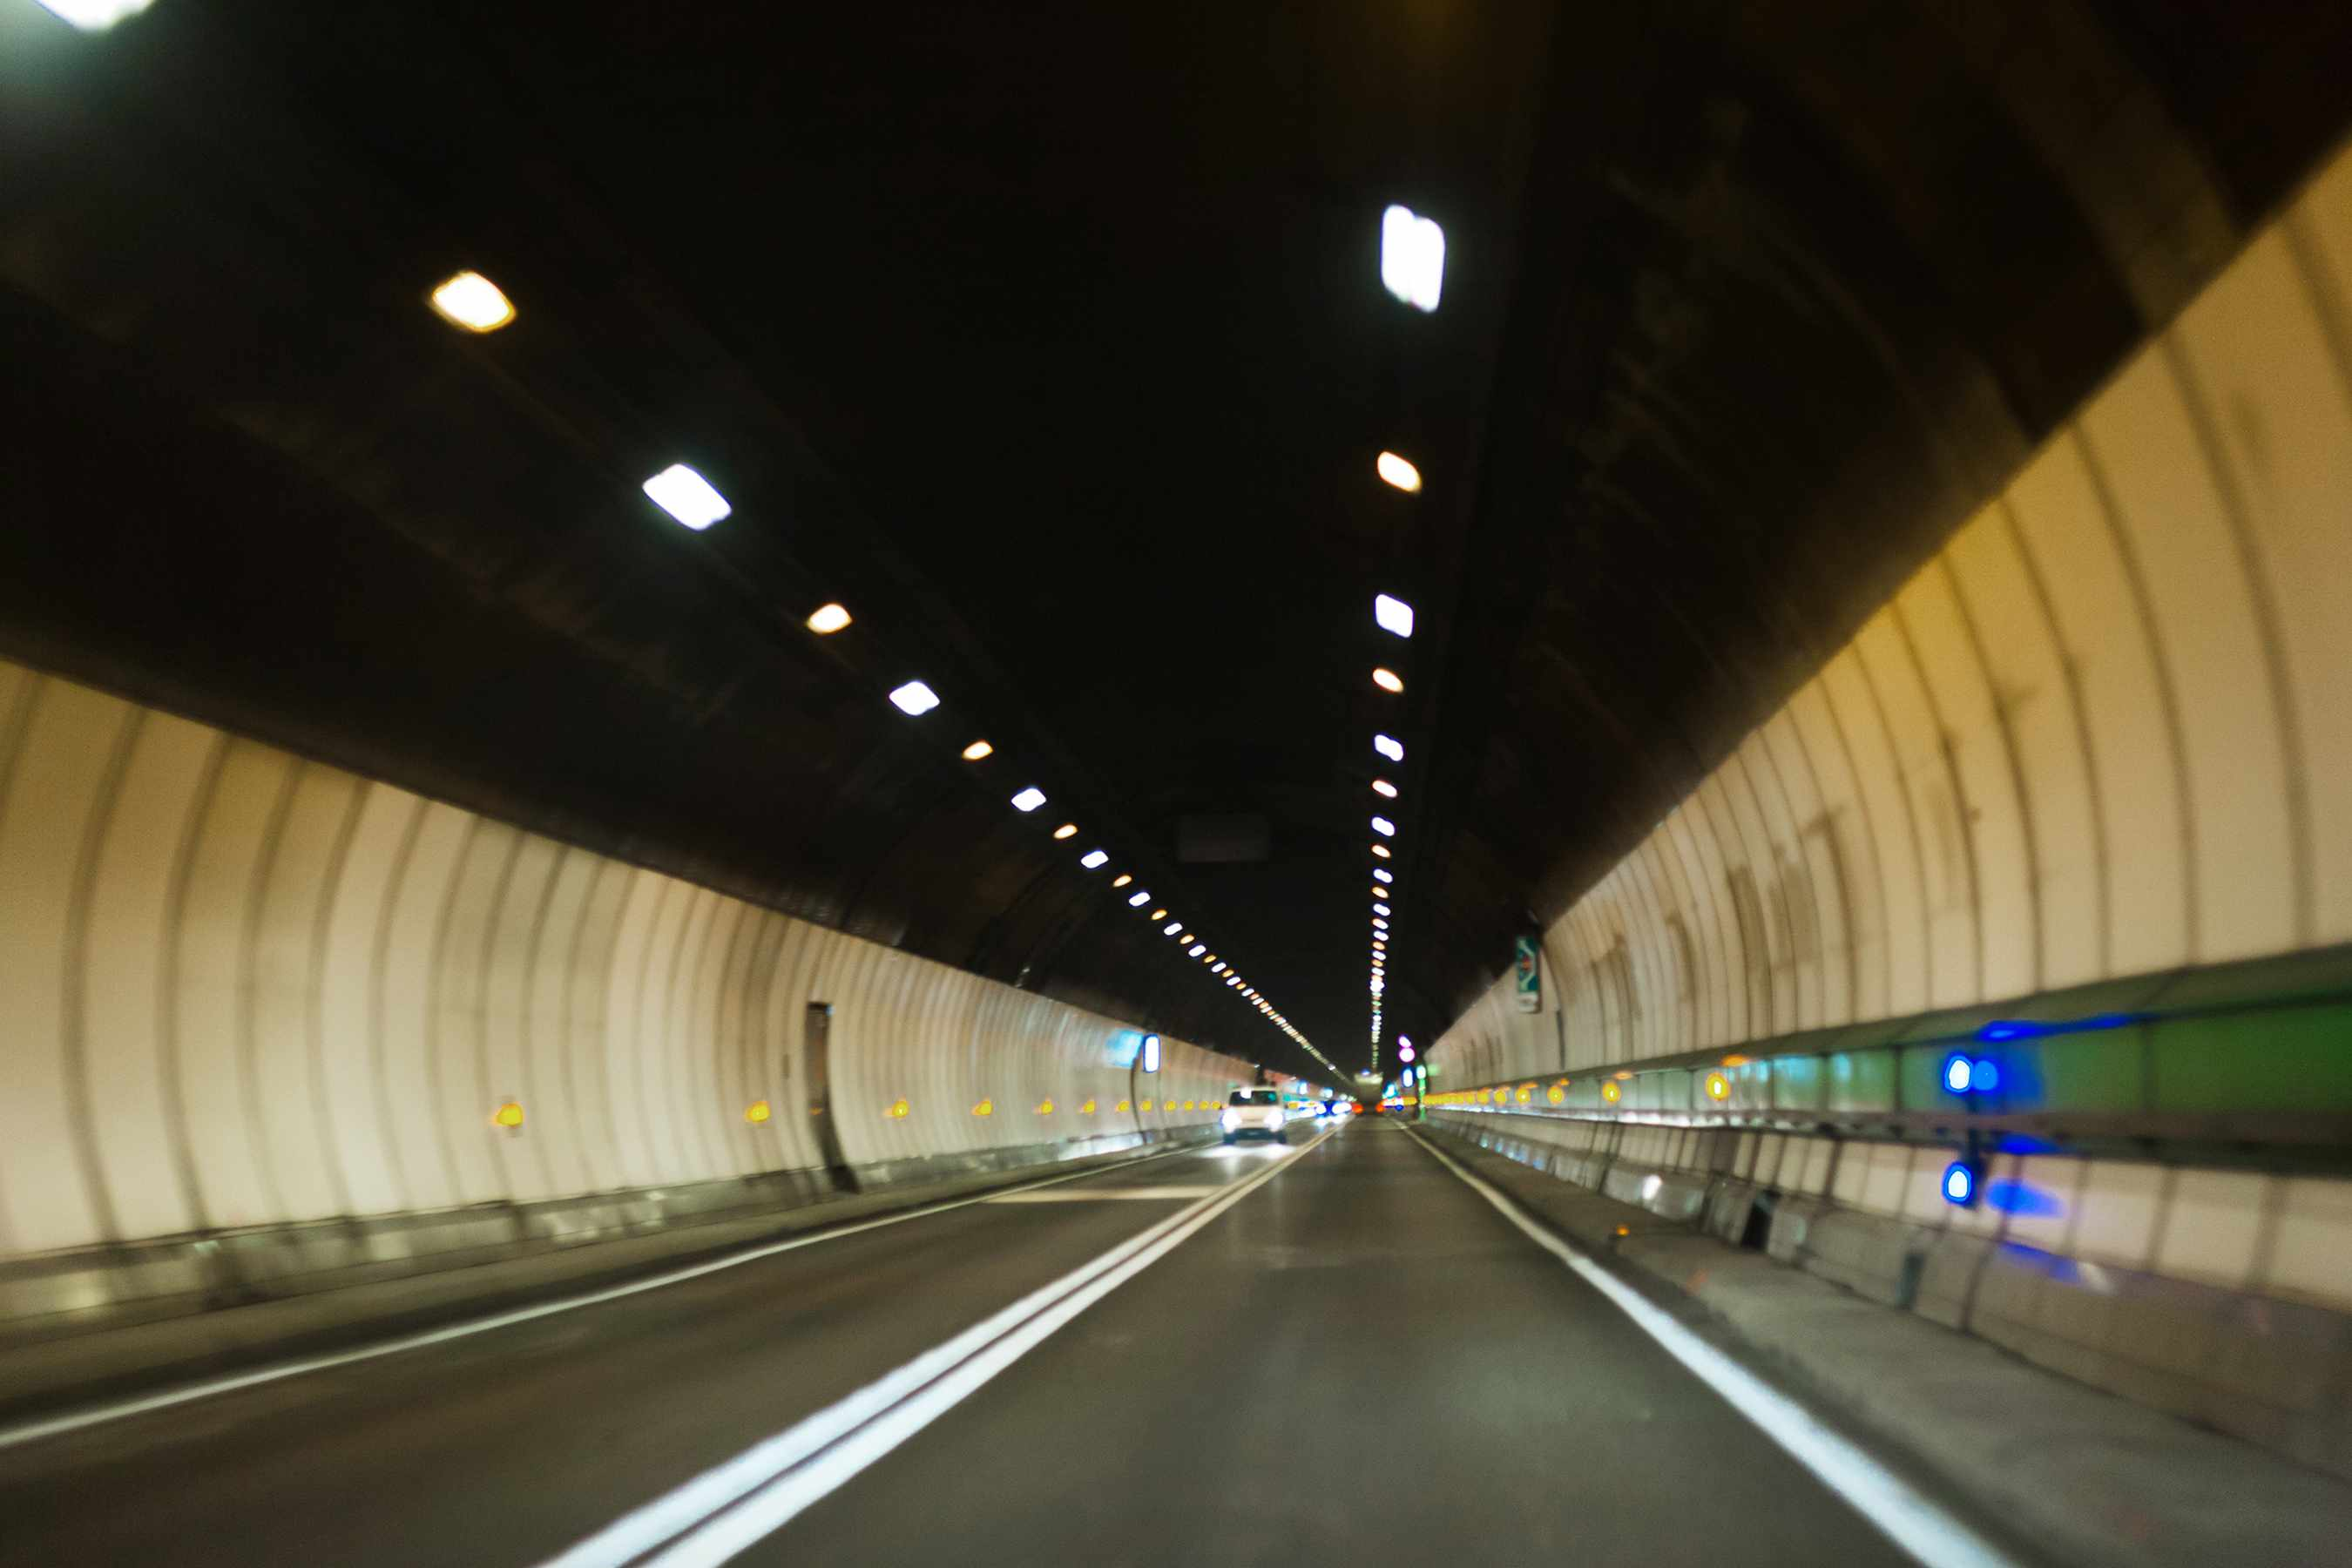 Traffic flows through the 7.2-mile-long Mont Blanc Tunnel, which runs between Chamonix, France, and Courmayeur, Italy